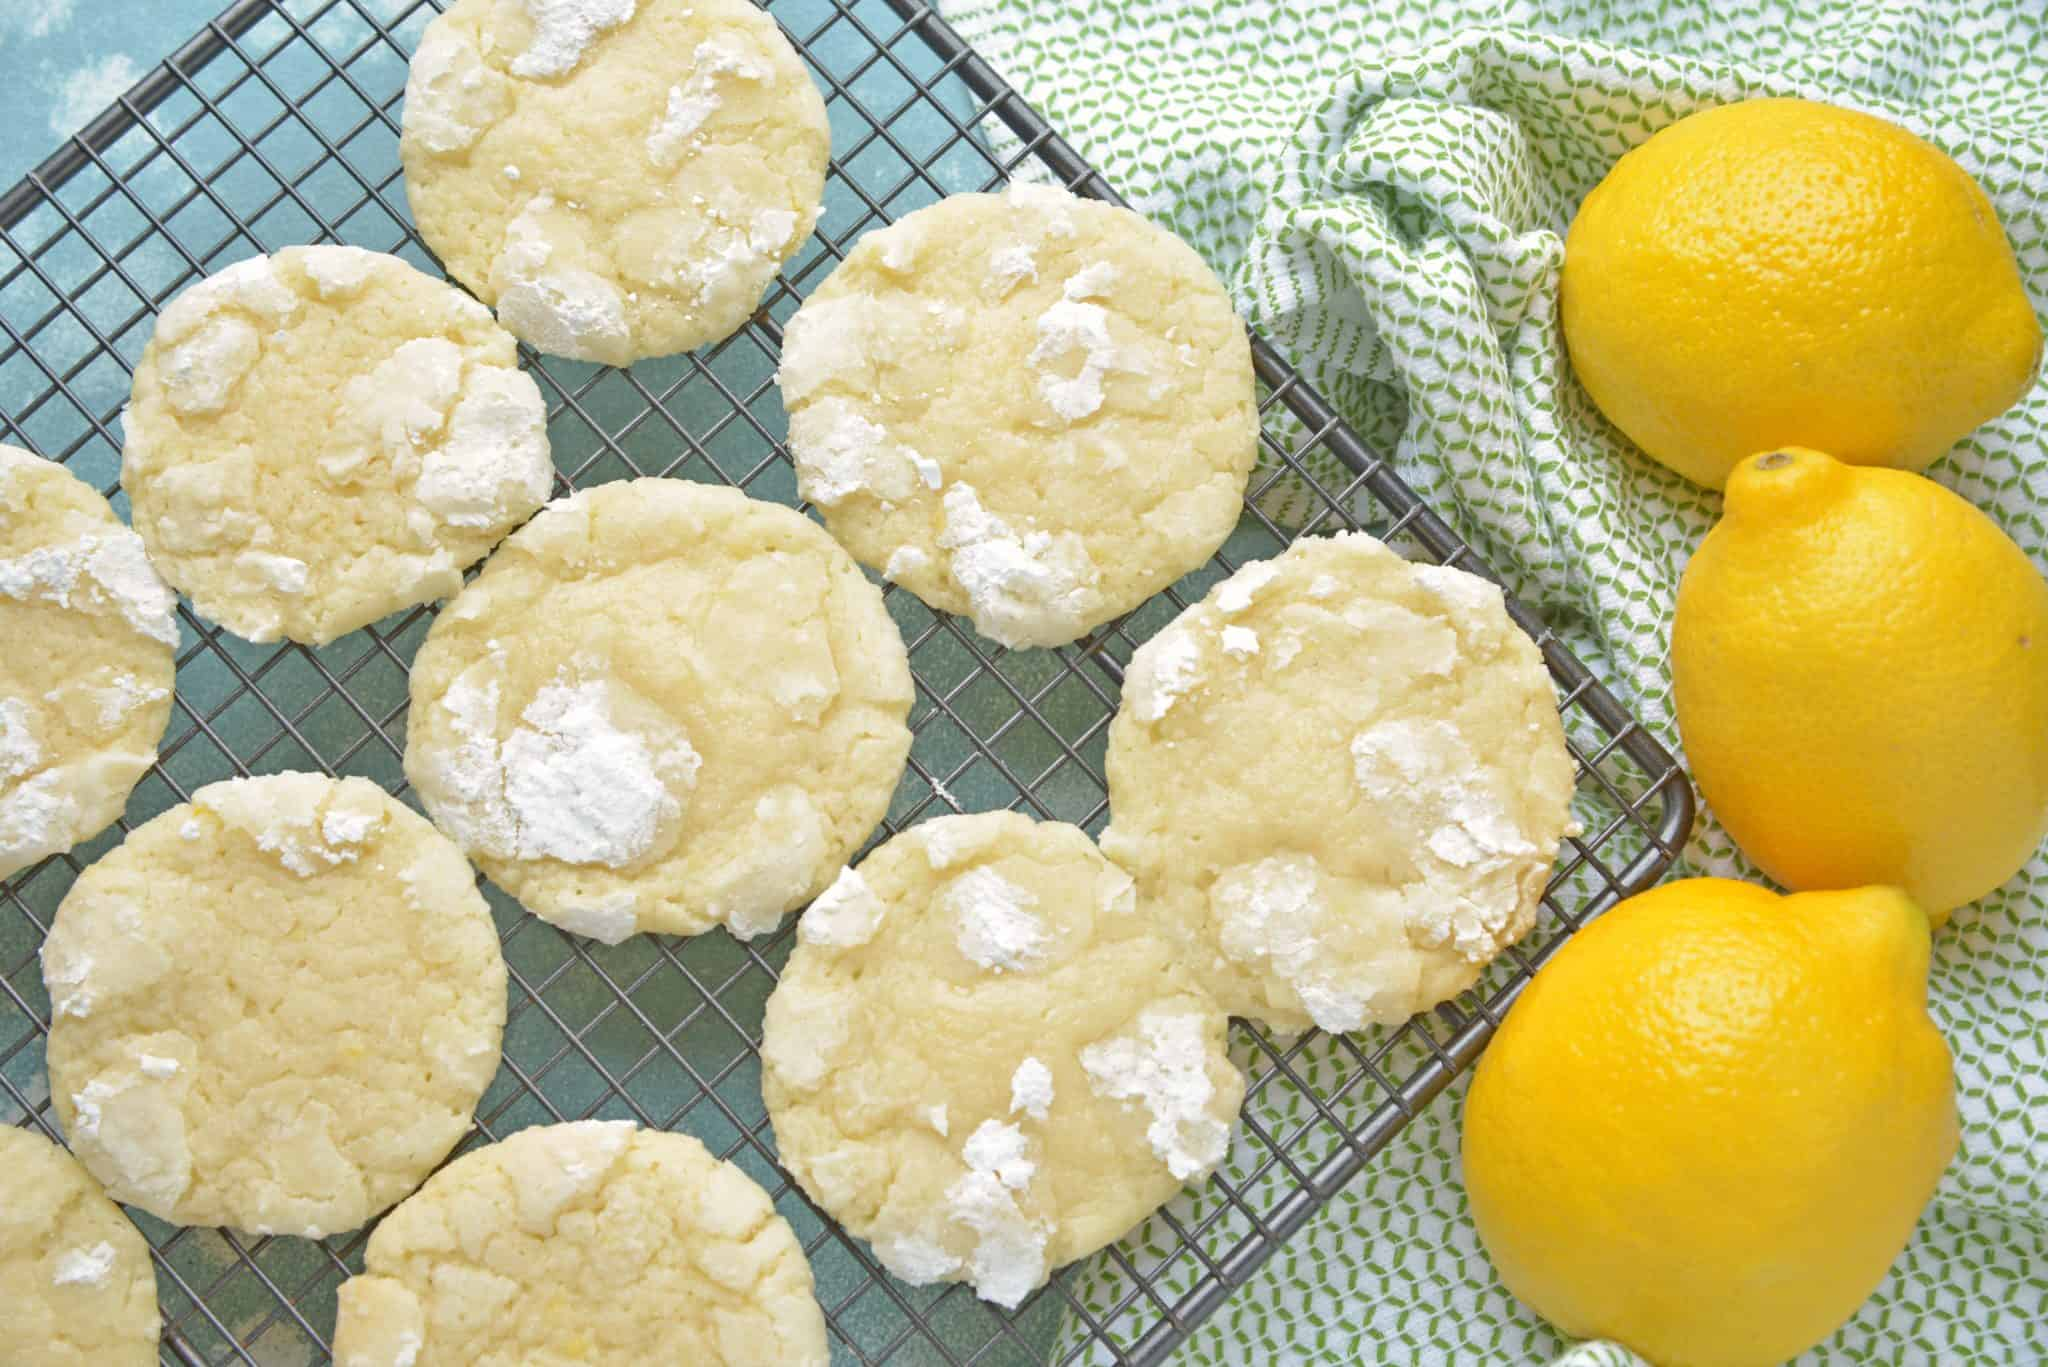 Lemon Cooler Cookies, also known as Sunshine Lemon Coolers, are a classic cookie recipe using fresh lemon and powdered sugar. #lemoncoolercookies #lemoncoolers #lemoncookies www.savoryexperiments.com